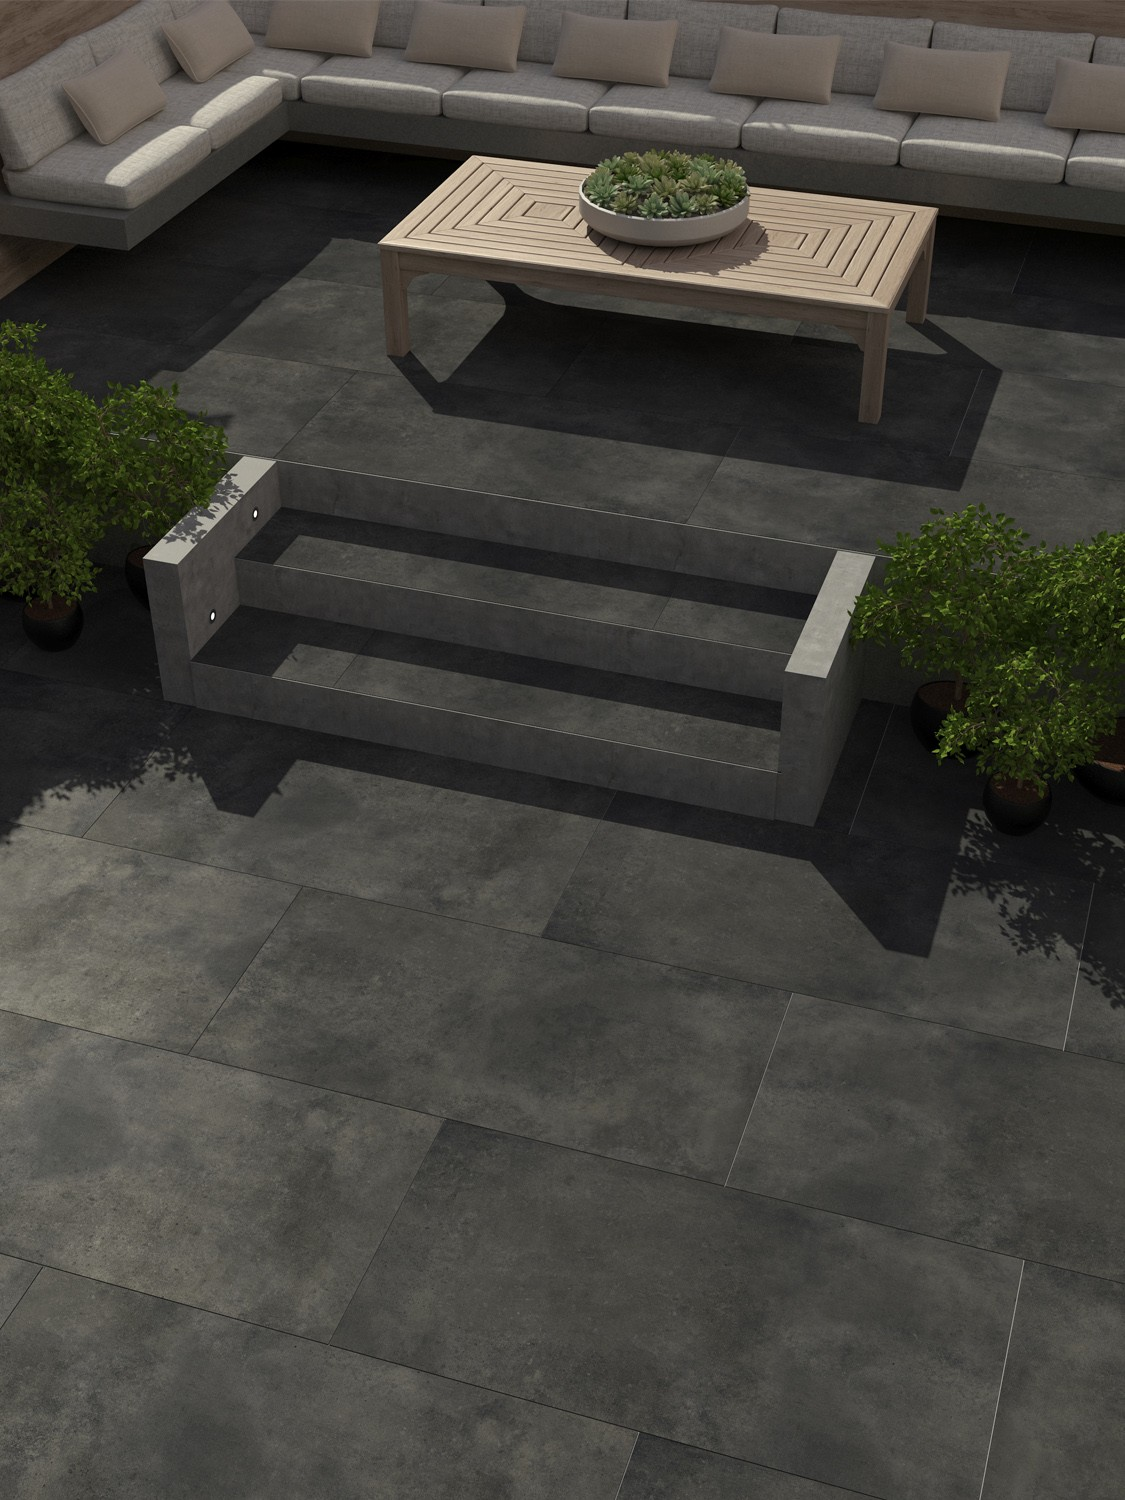 Eclipse Ash Virtue Vitrified Porcelain Paving Slabs - 1200x600 Pack